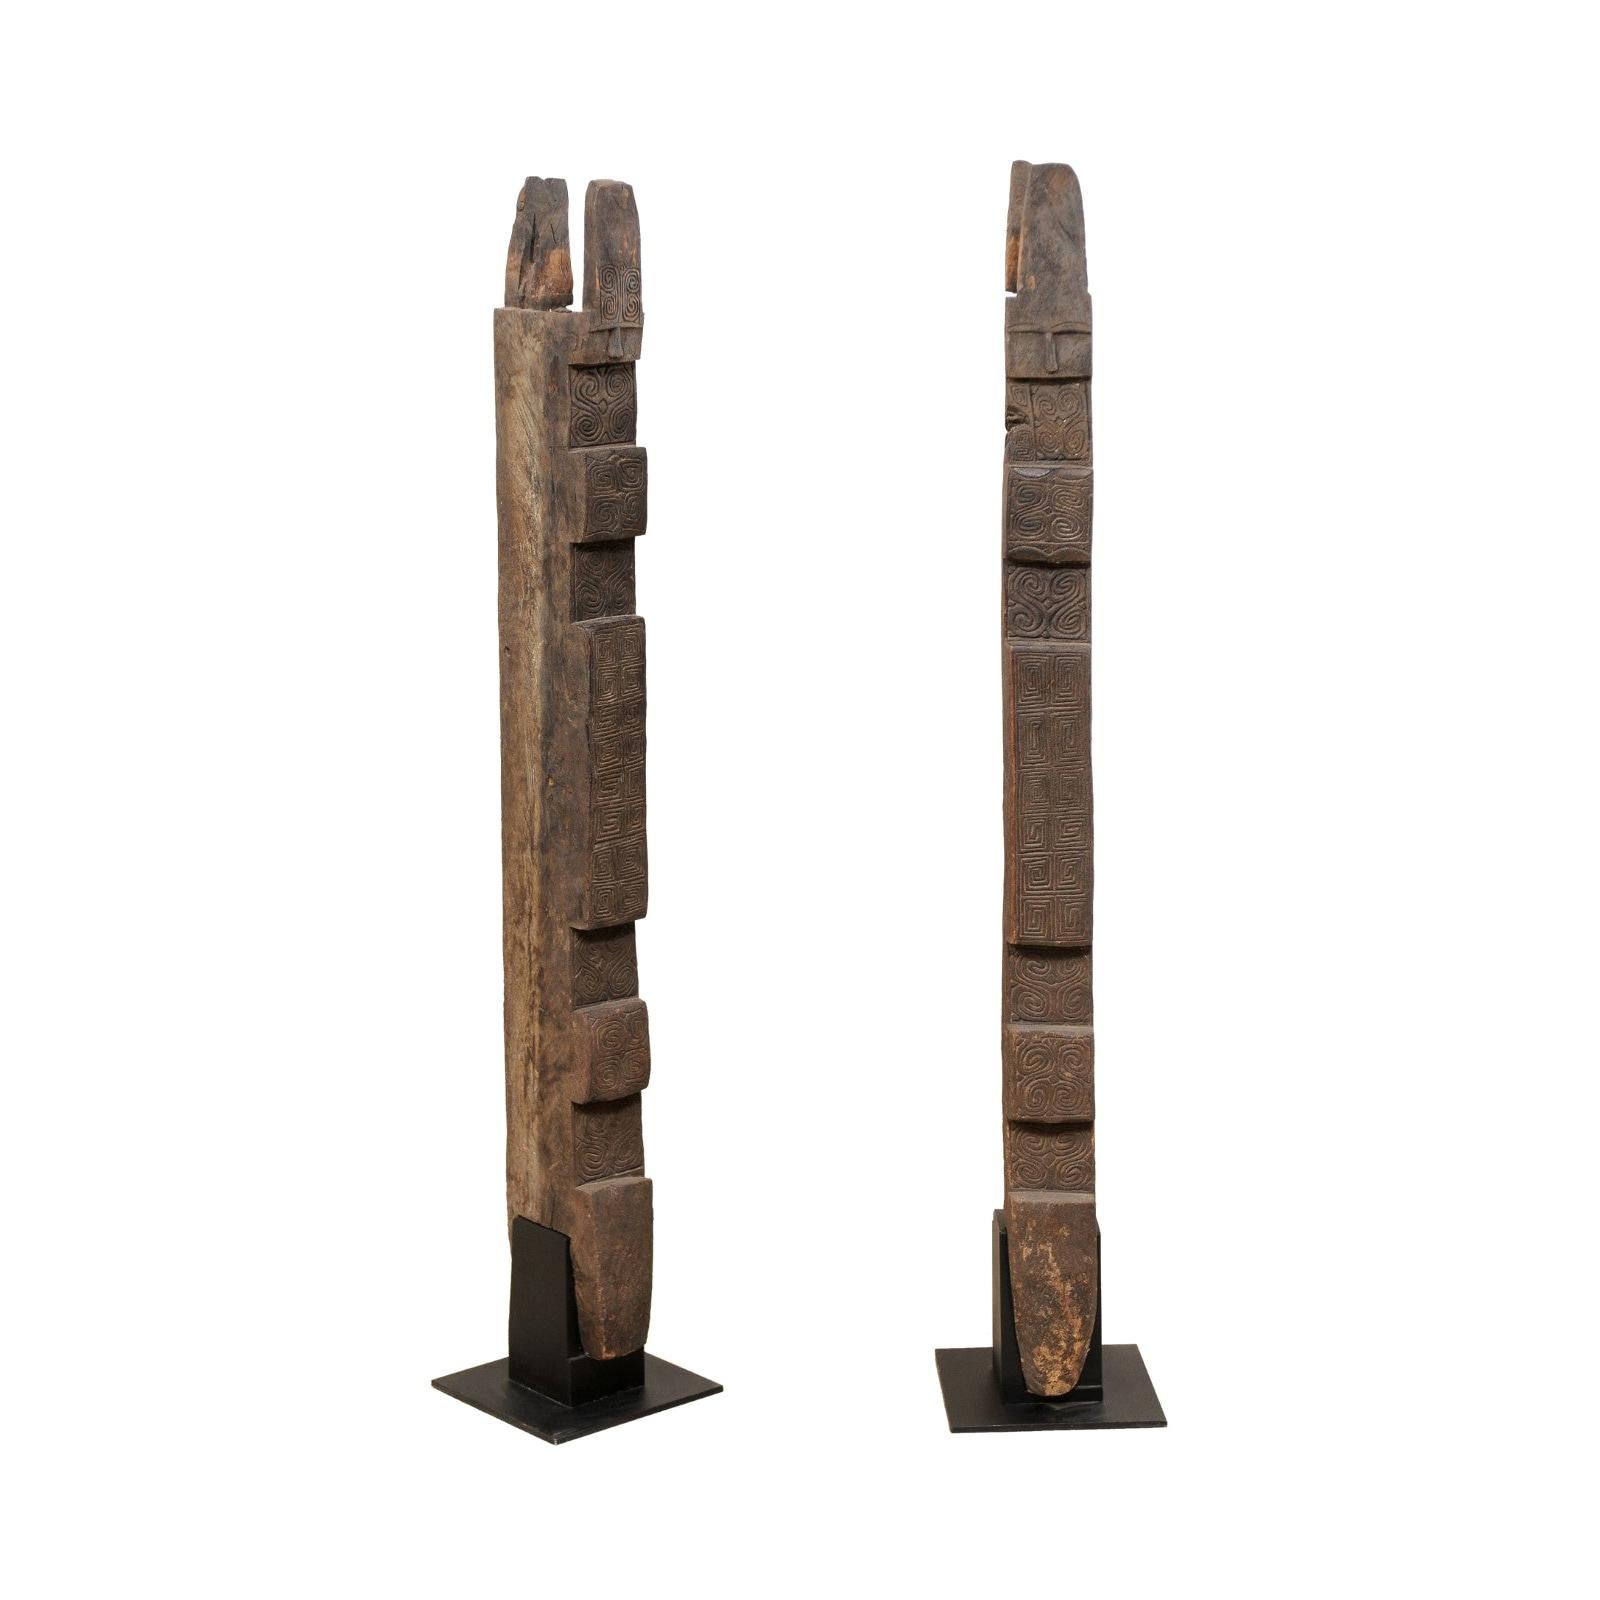 Pair of 19th Century Carved-Wood Belue Door Posts from Timor Island